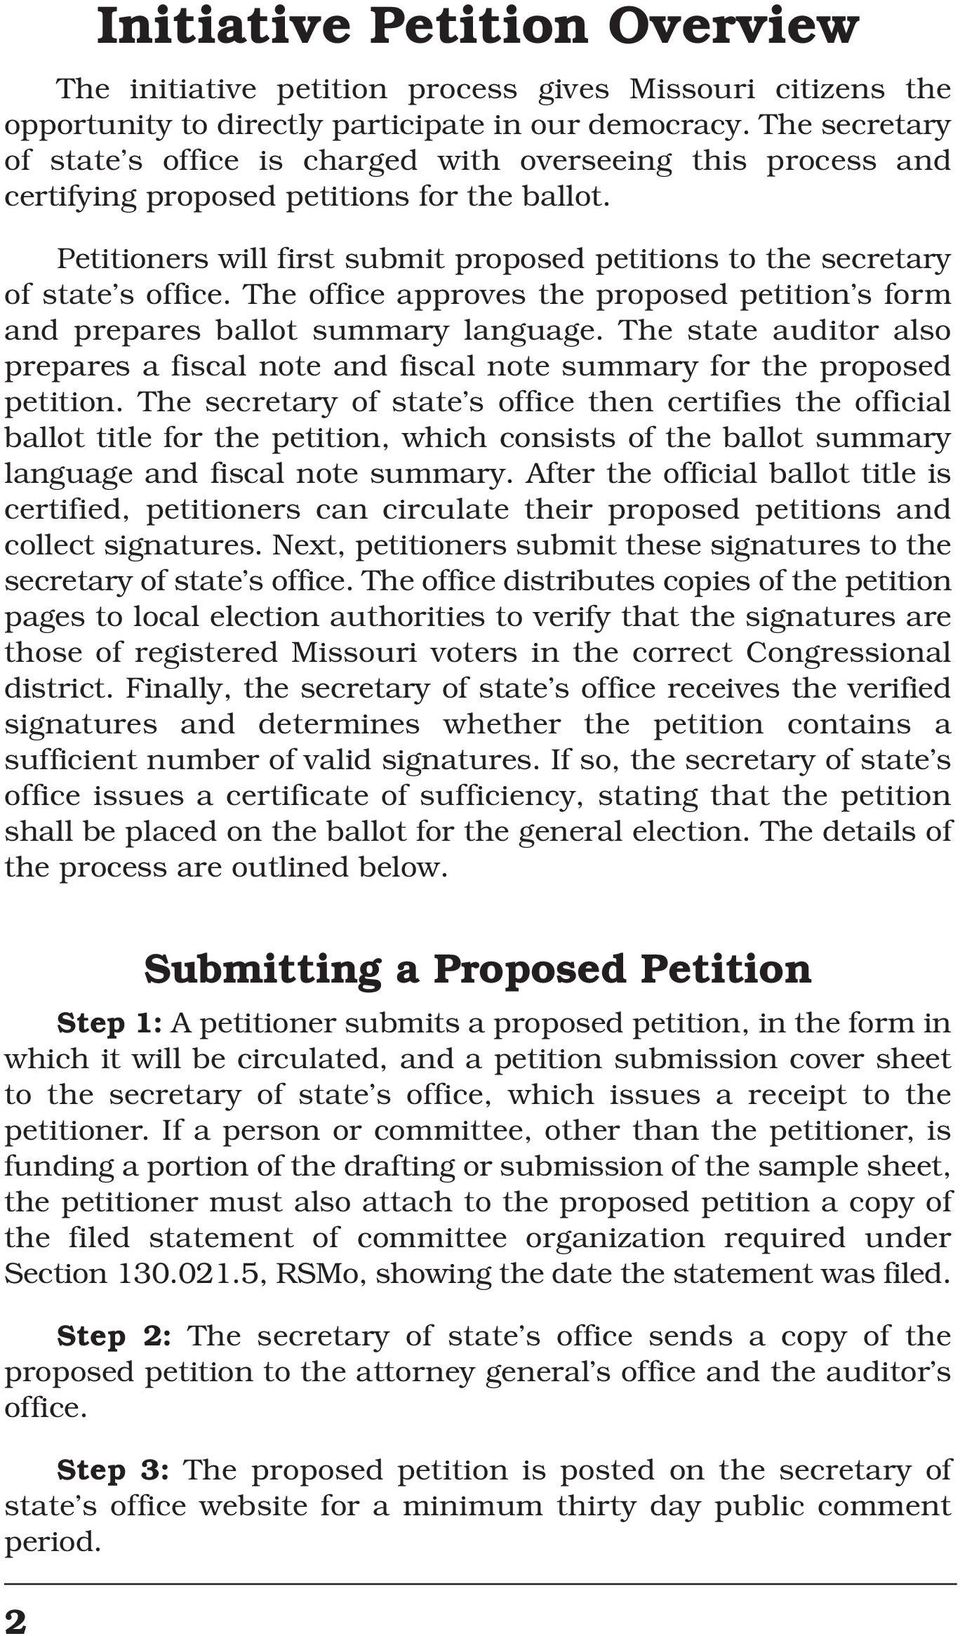 Petitioners will first submit proposed petitions to the secretary of state s office. The office approves the proposed petition s form and prepares ballot summary language.